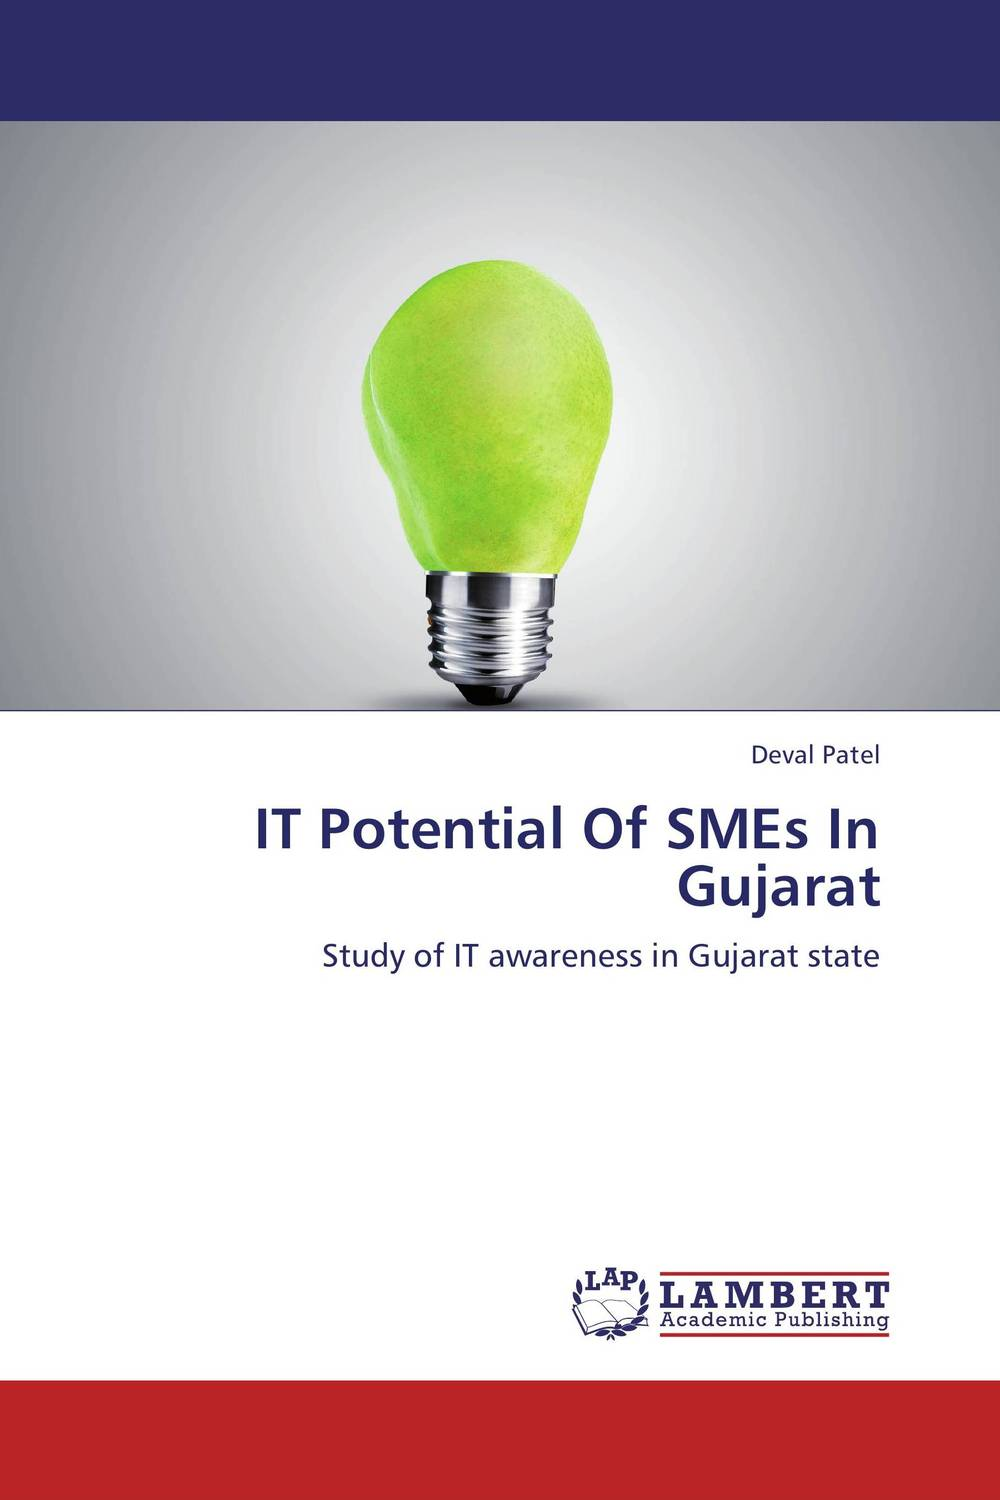 IT Potential Of SMEs In Gujarat sale 5 35% off it is for price changing not for sale there is no products sending